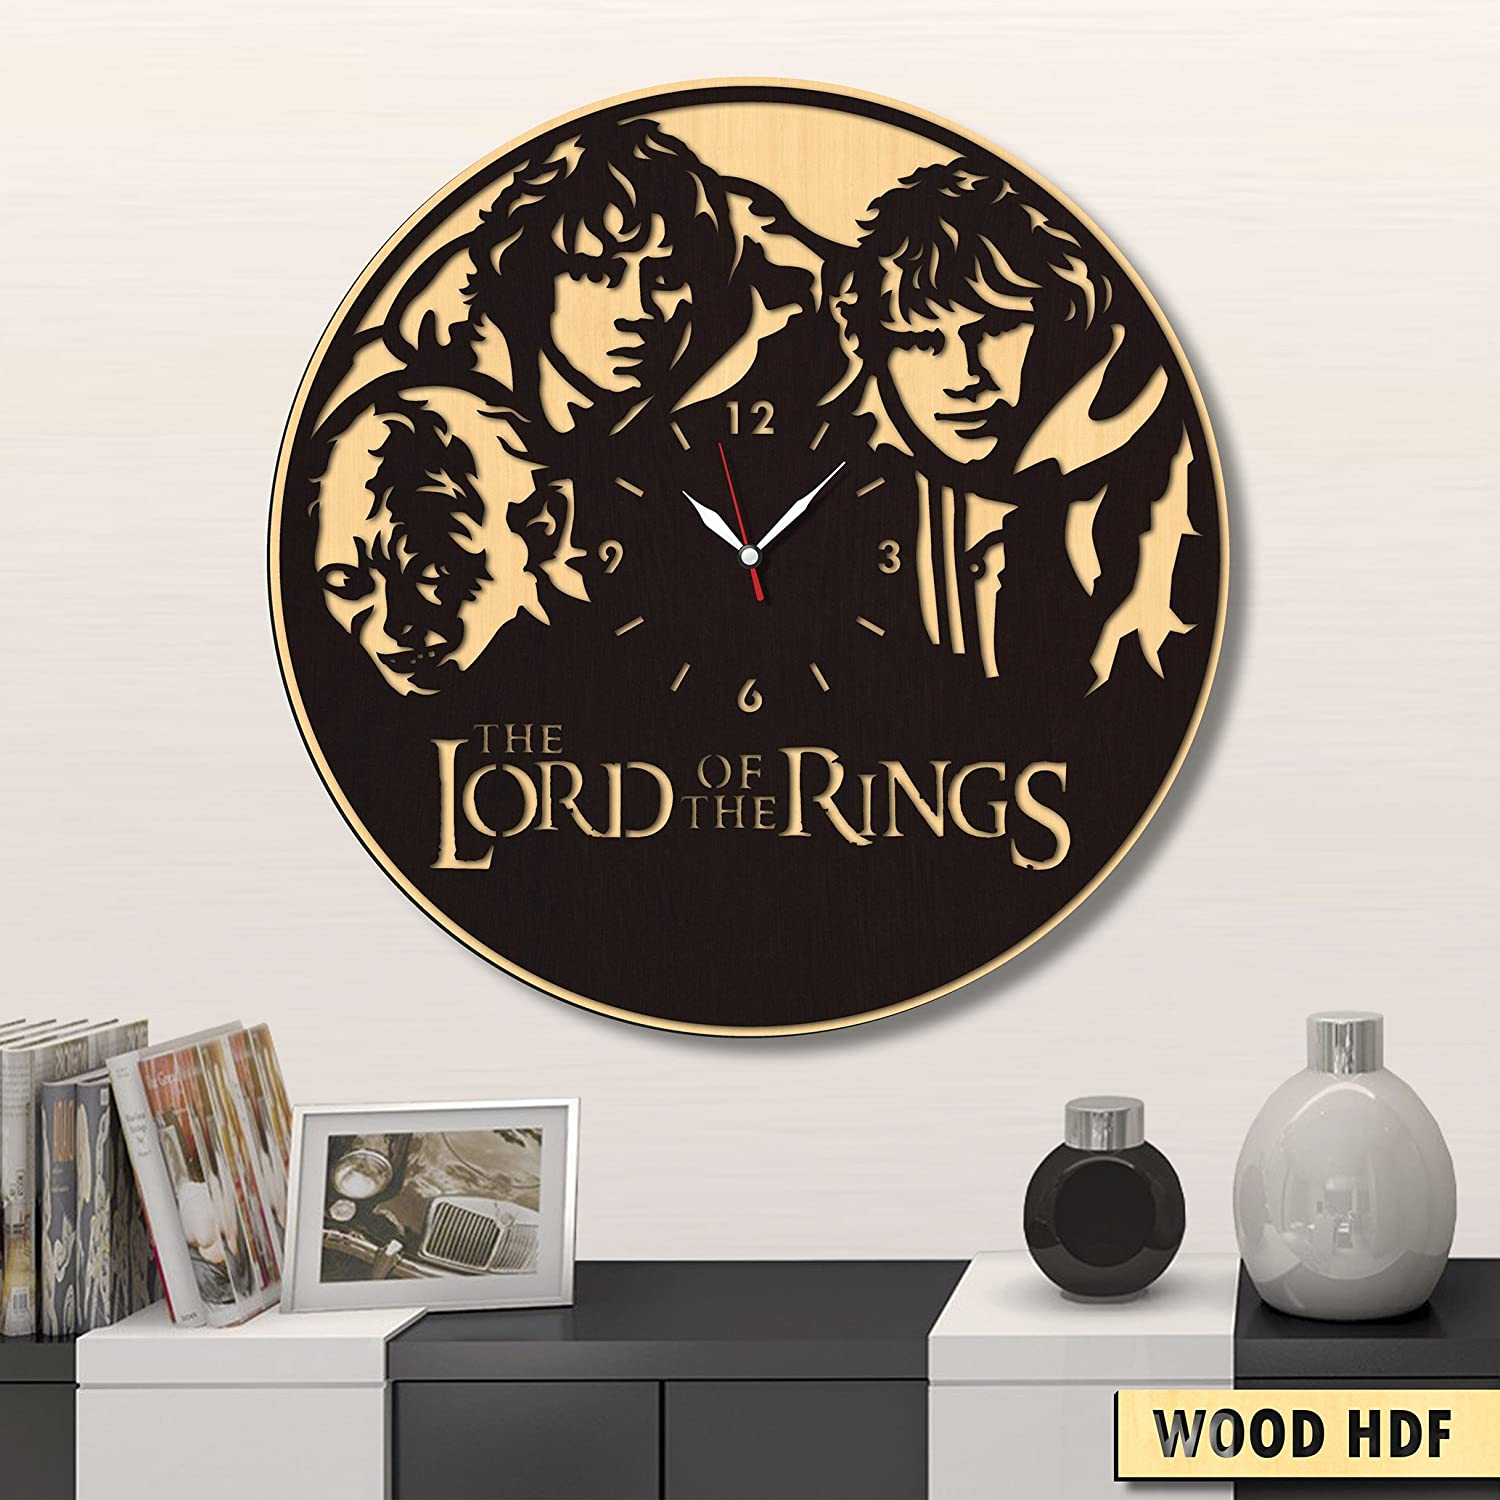 Lord of The Rings Vinyl Clock Best Gift for Fans Lord of The Rings Lord of The Rings Wall Clock Original Wall Home Decor